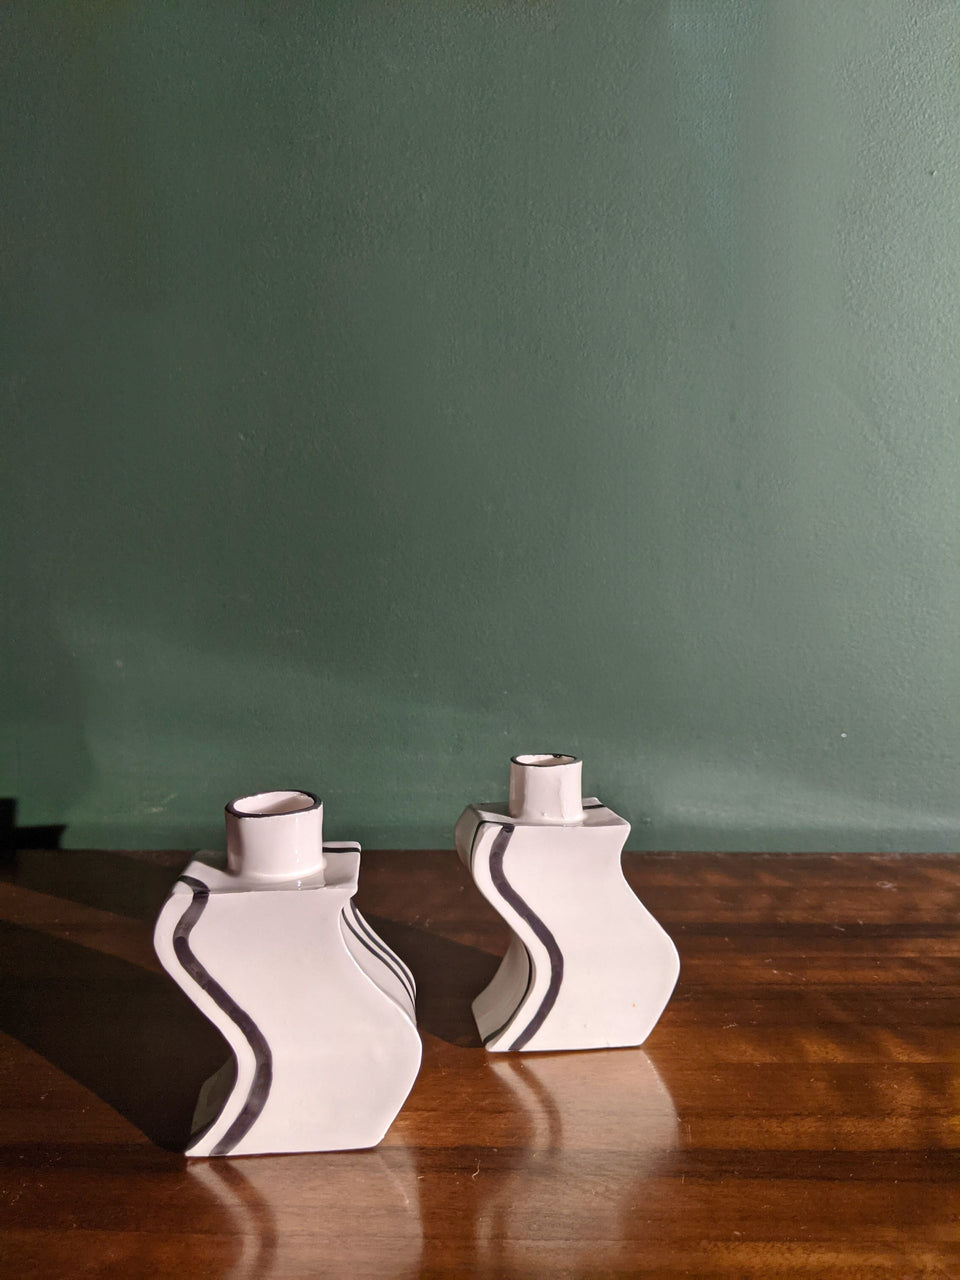 Son of Pear Handmade Ceramic Wave Candleholder Black and White Monochrome